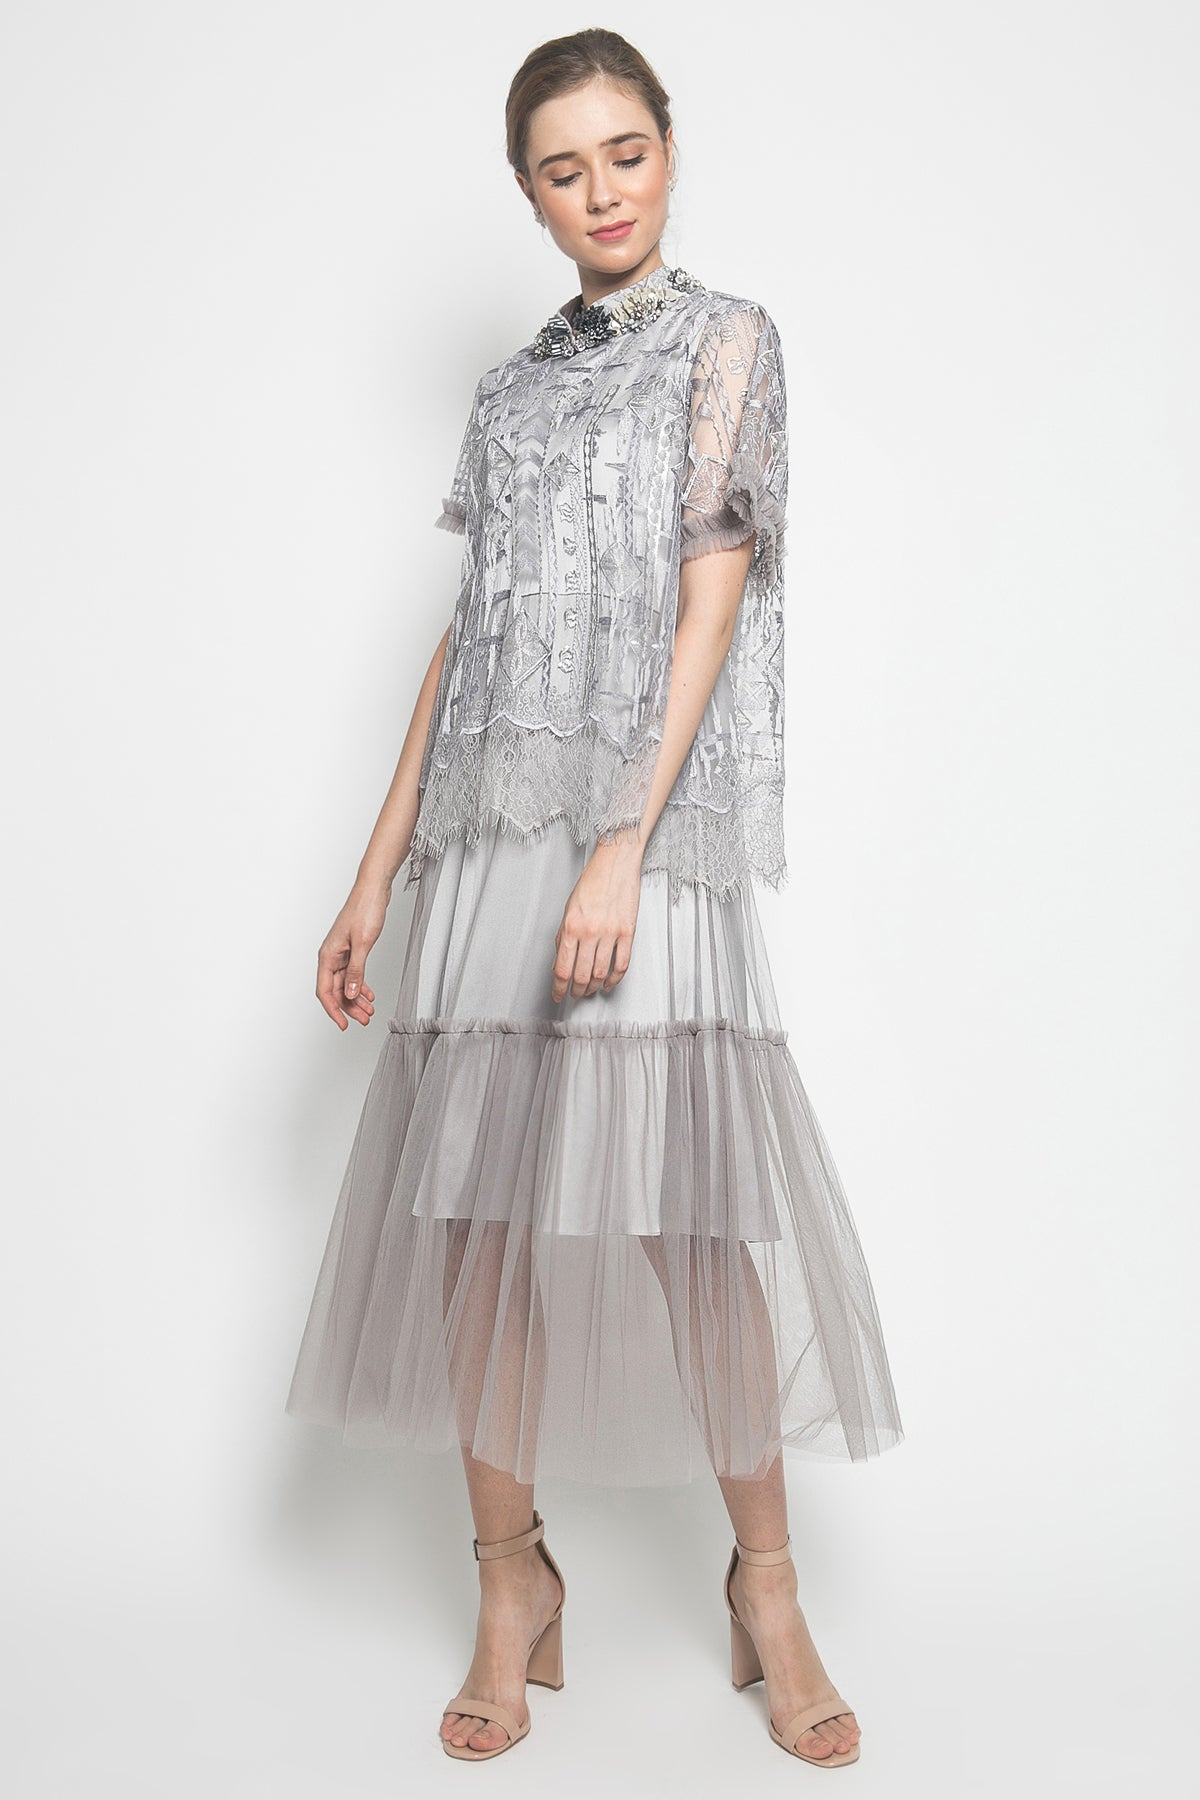 Martiza Dress Twist Tulle in Silver